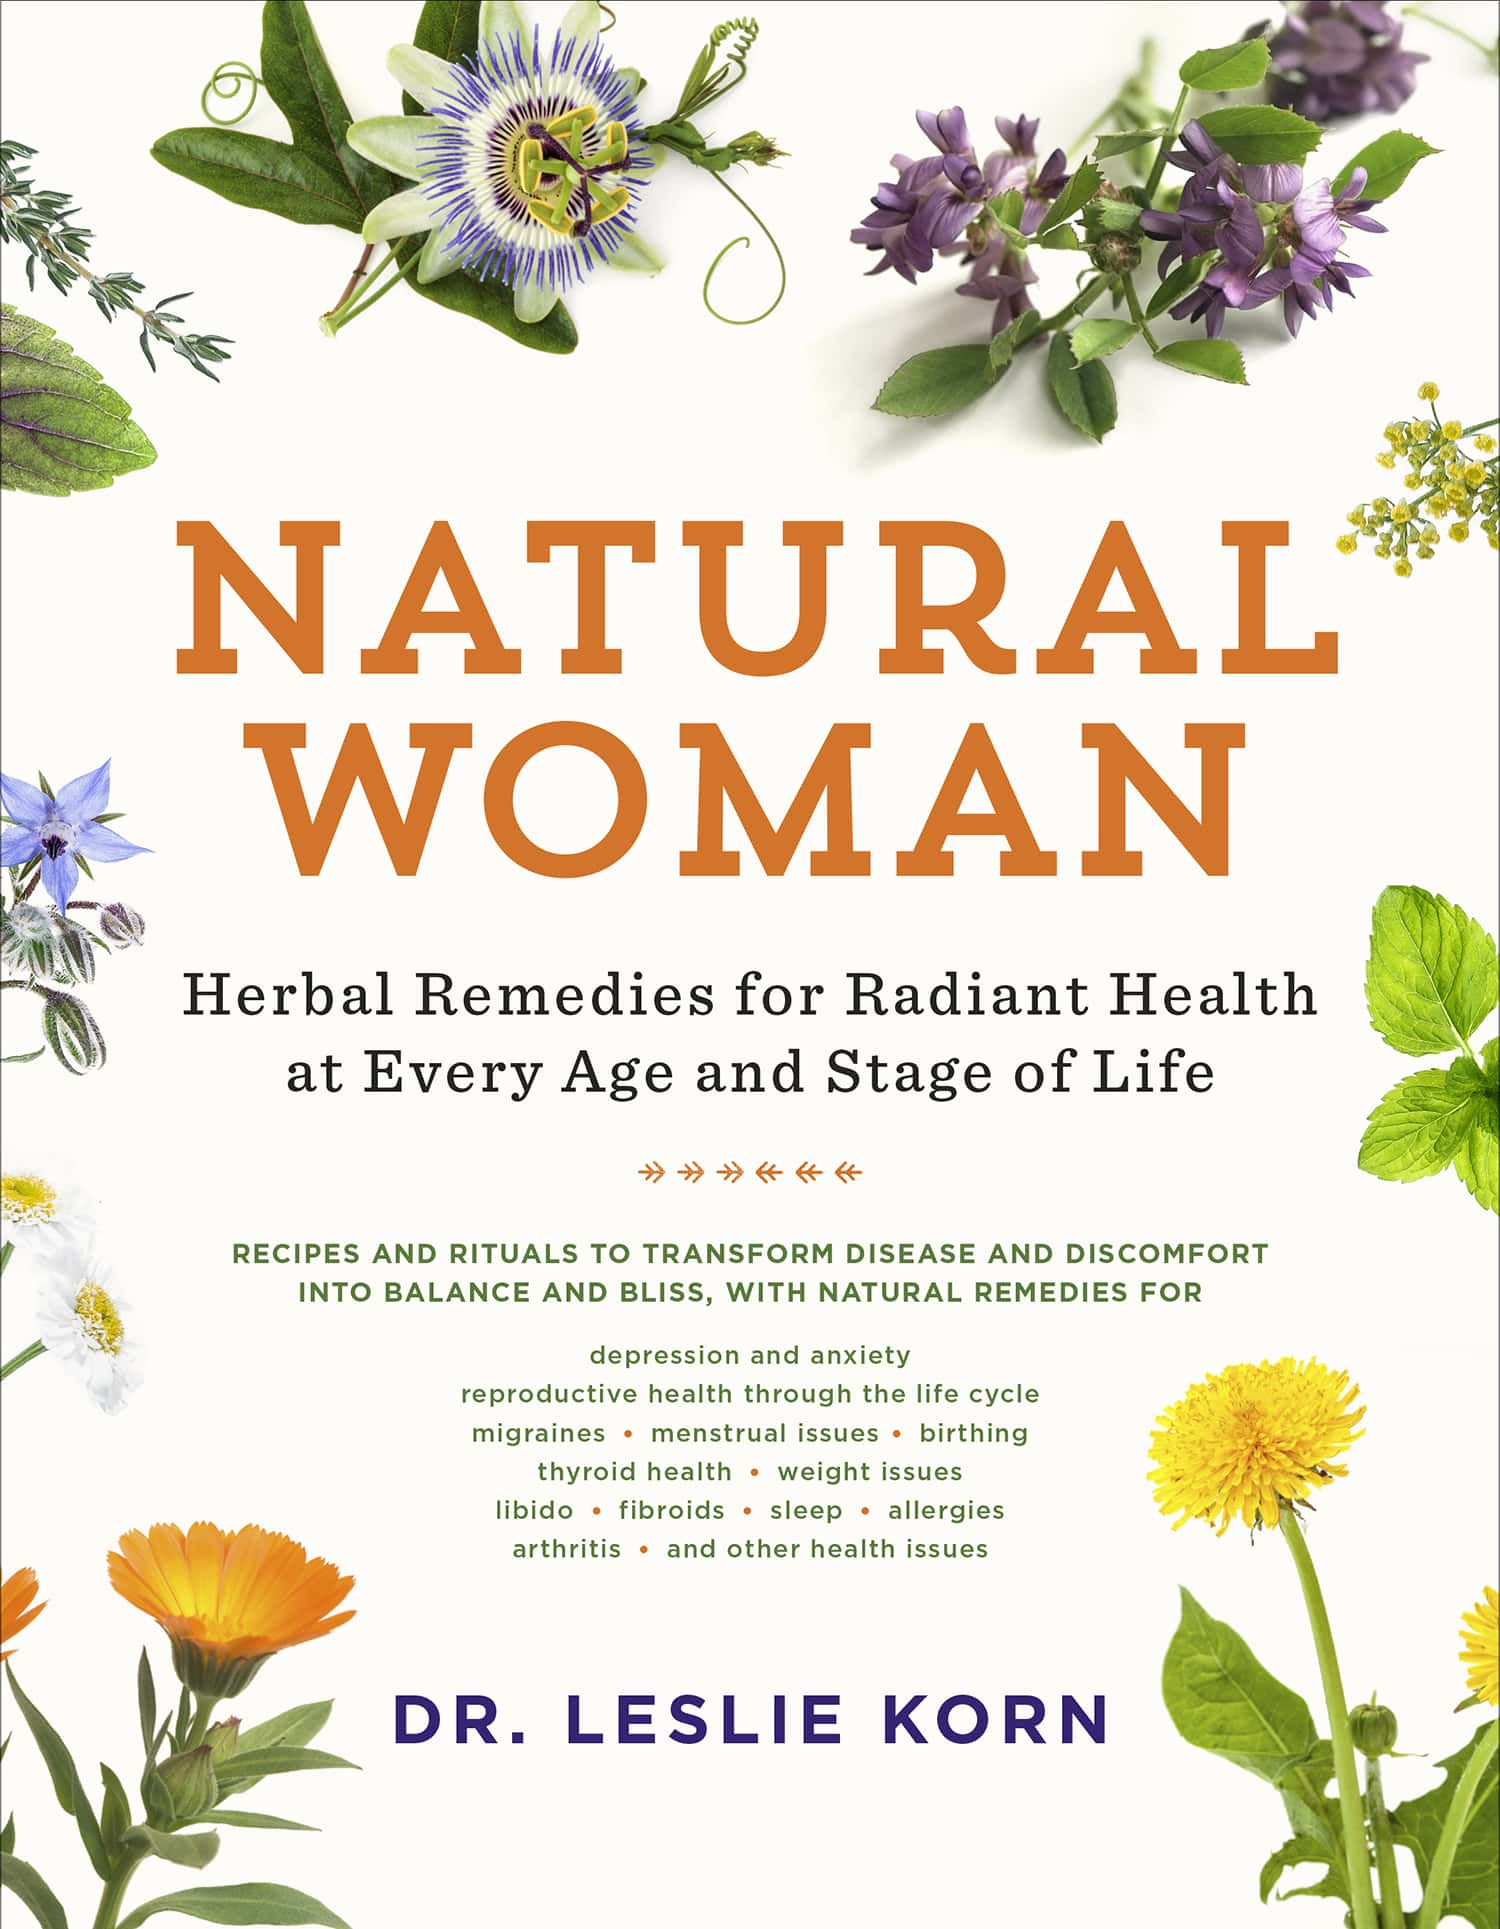 Natural Woman, Herbal Remedies for Radiant Health at Every Age and Stage of Life